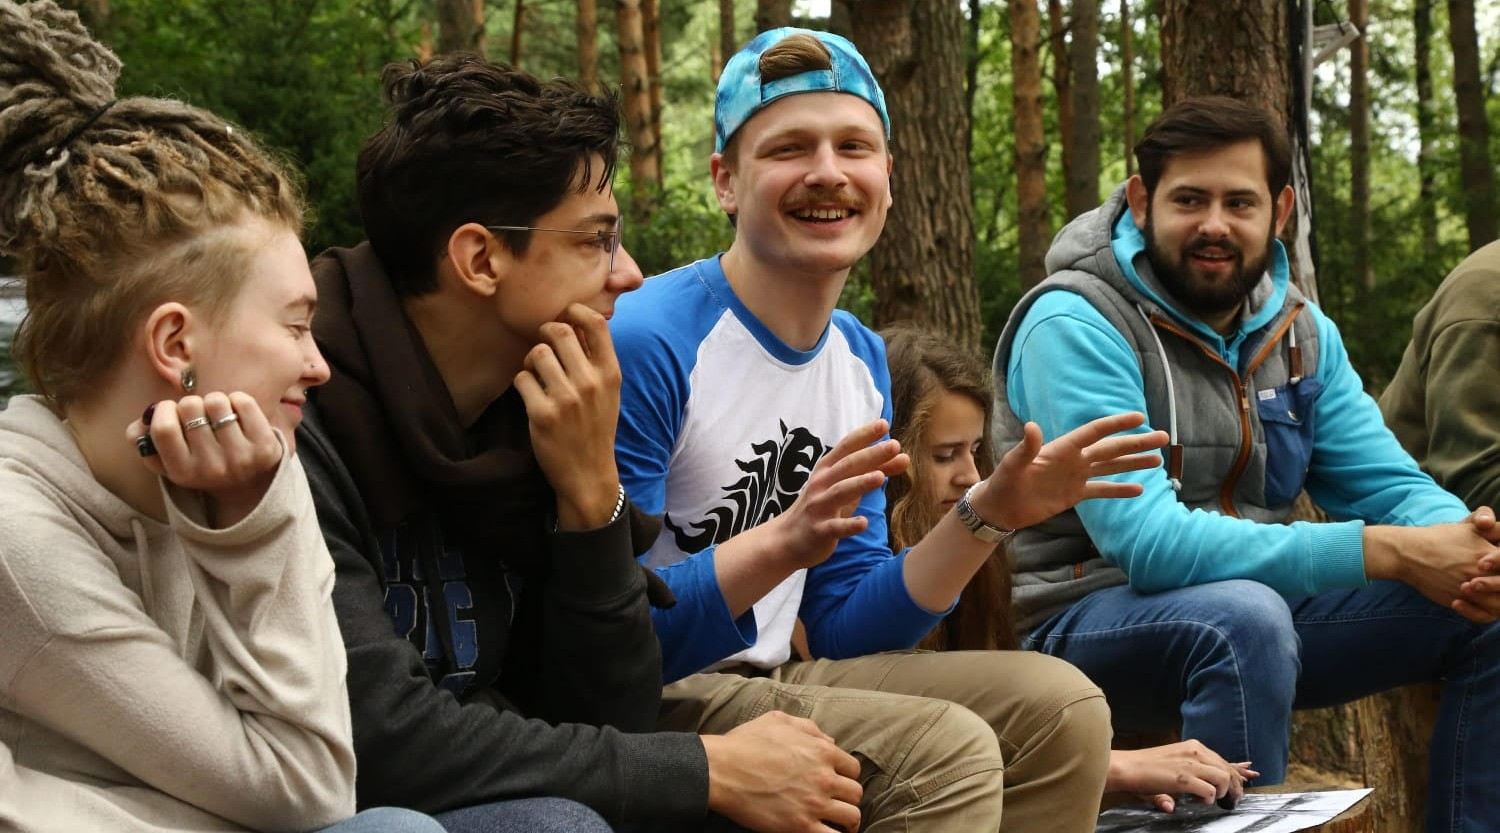 Igor Litvin, right, started a Torah-based ecology club in Minsk, Belarus. Participants meet every so often to discuss an environmental dilemma and what Judaism has to say about it.